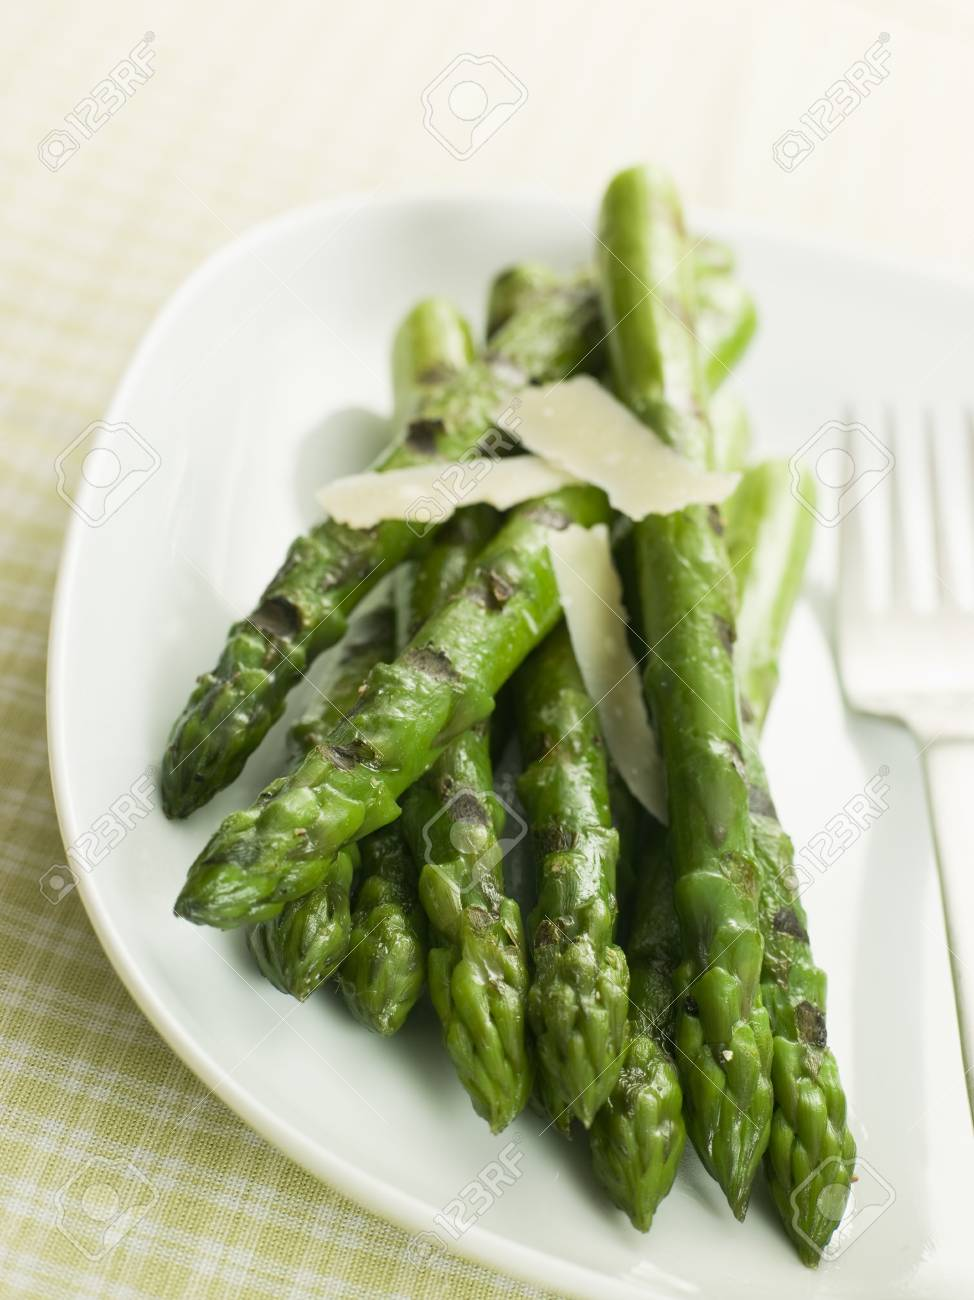 Chargrilled Asparagus Spears with Parmesan Cheese Shaves Stock Photo - 3181298